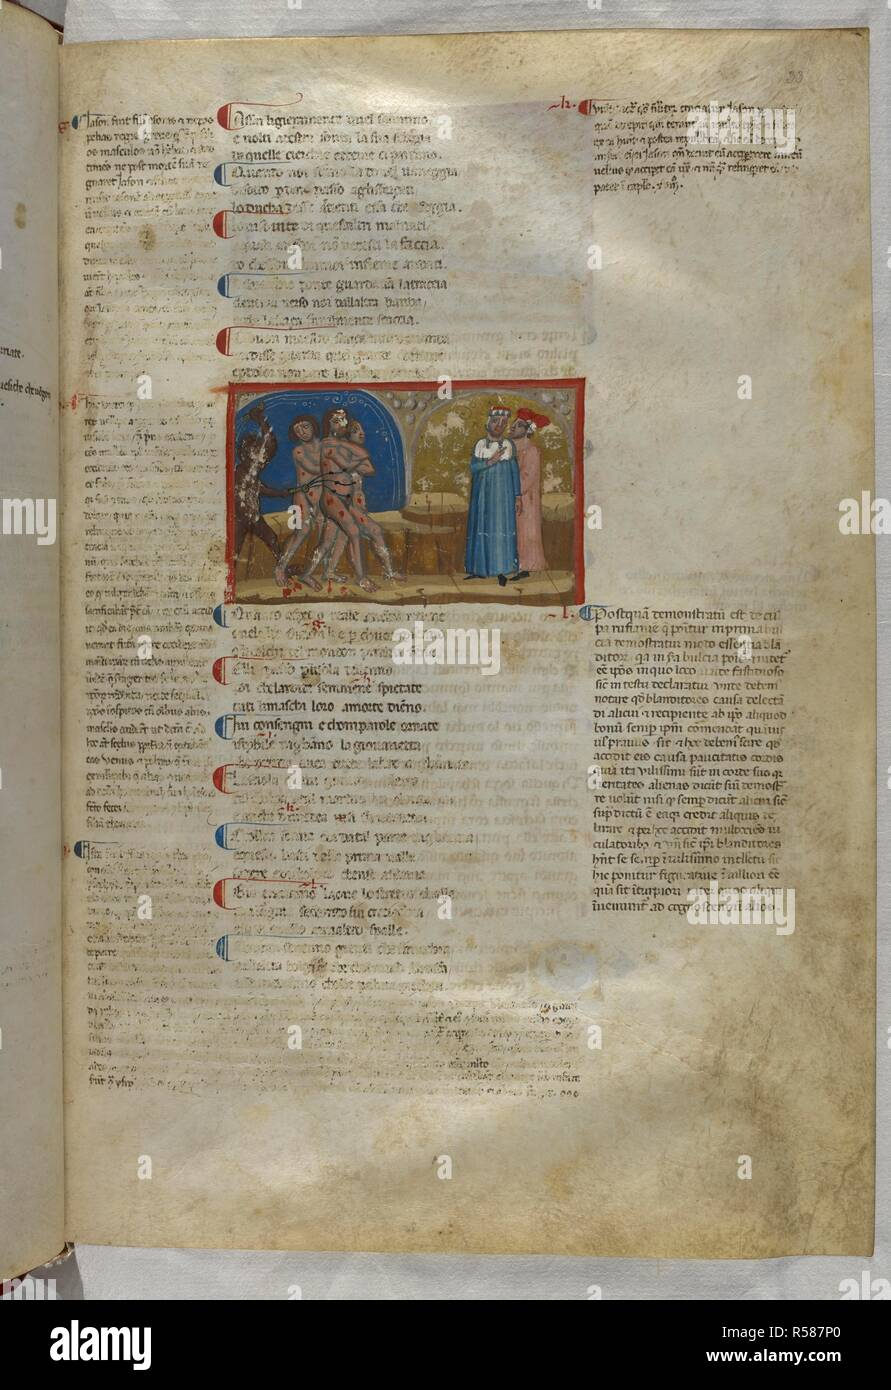 Inferno: Jason among the seducers. Dante Alighieri, Divina Commedia ( The Divine Comedy ), with a commentary in Latin. 1st half of the 14th century. Source: Egerton 943, f.33. Language: Italian, Latin. - Stock Image